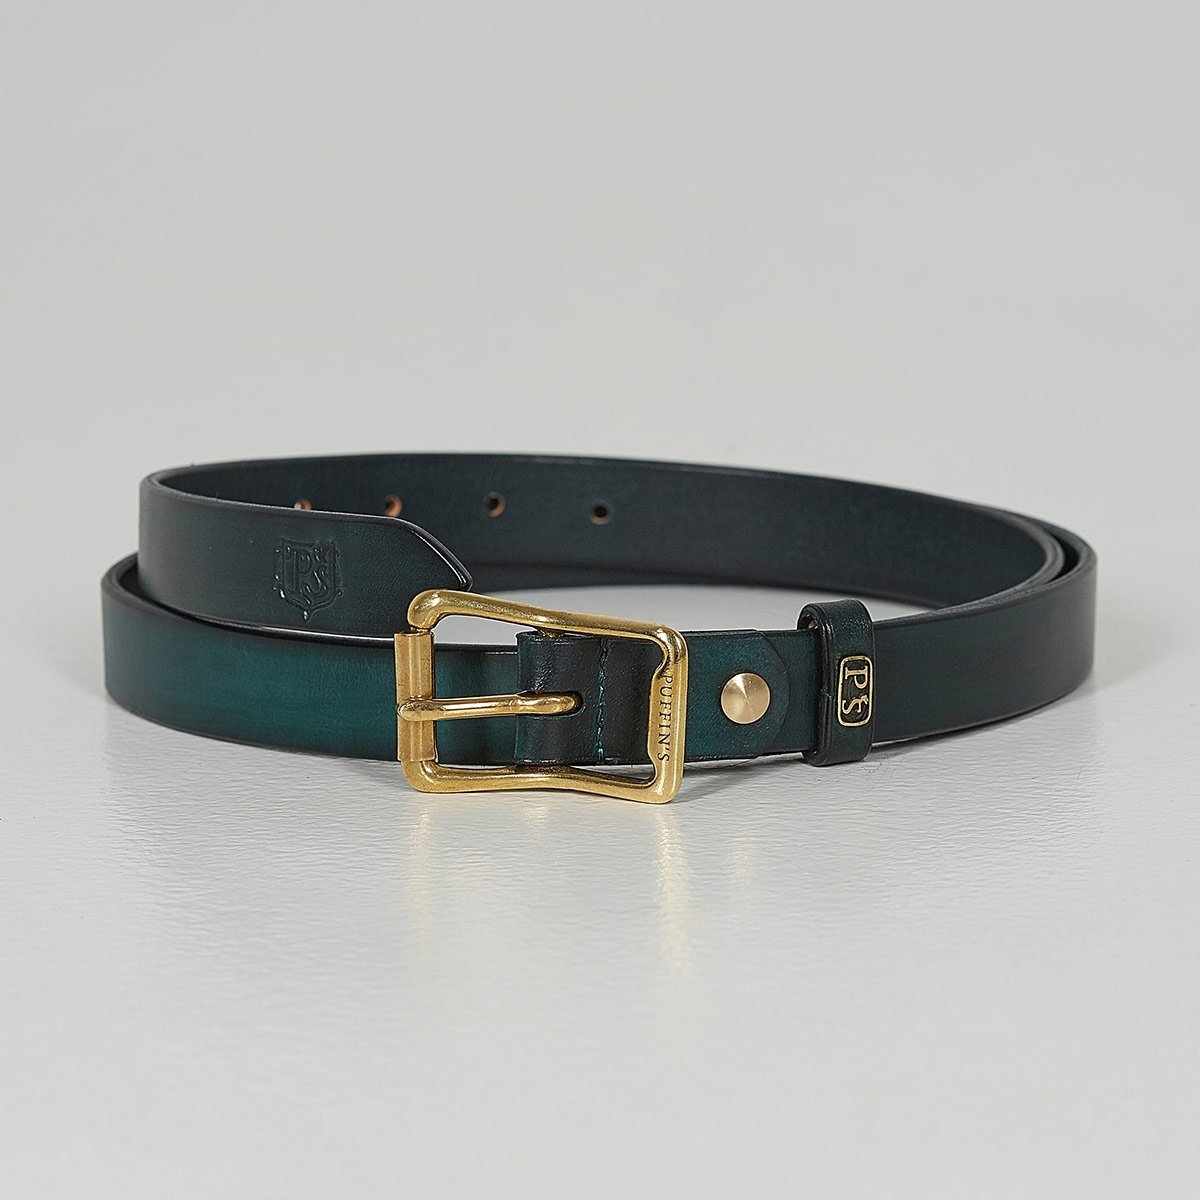 Luxury narrow belt 25mm with patina bluemarine